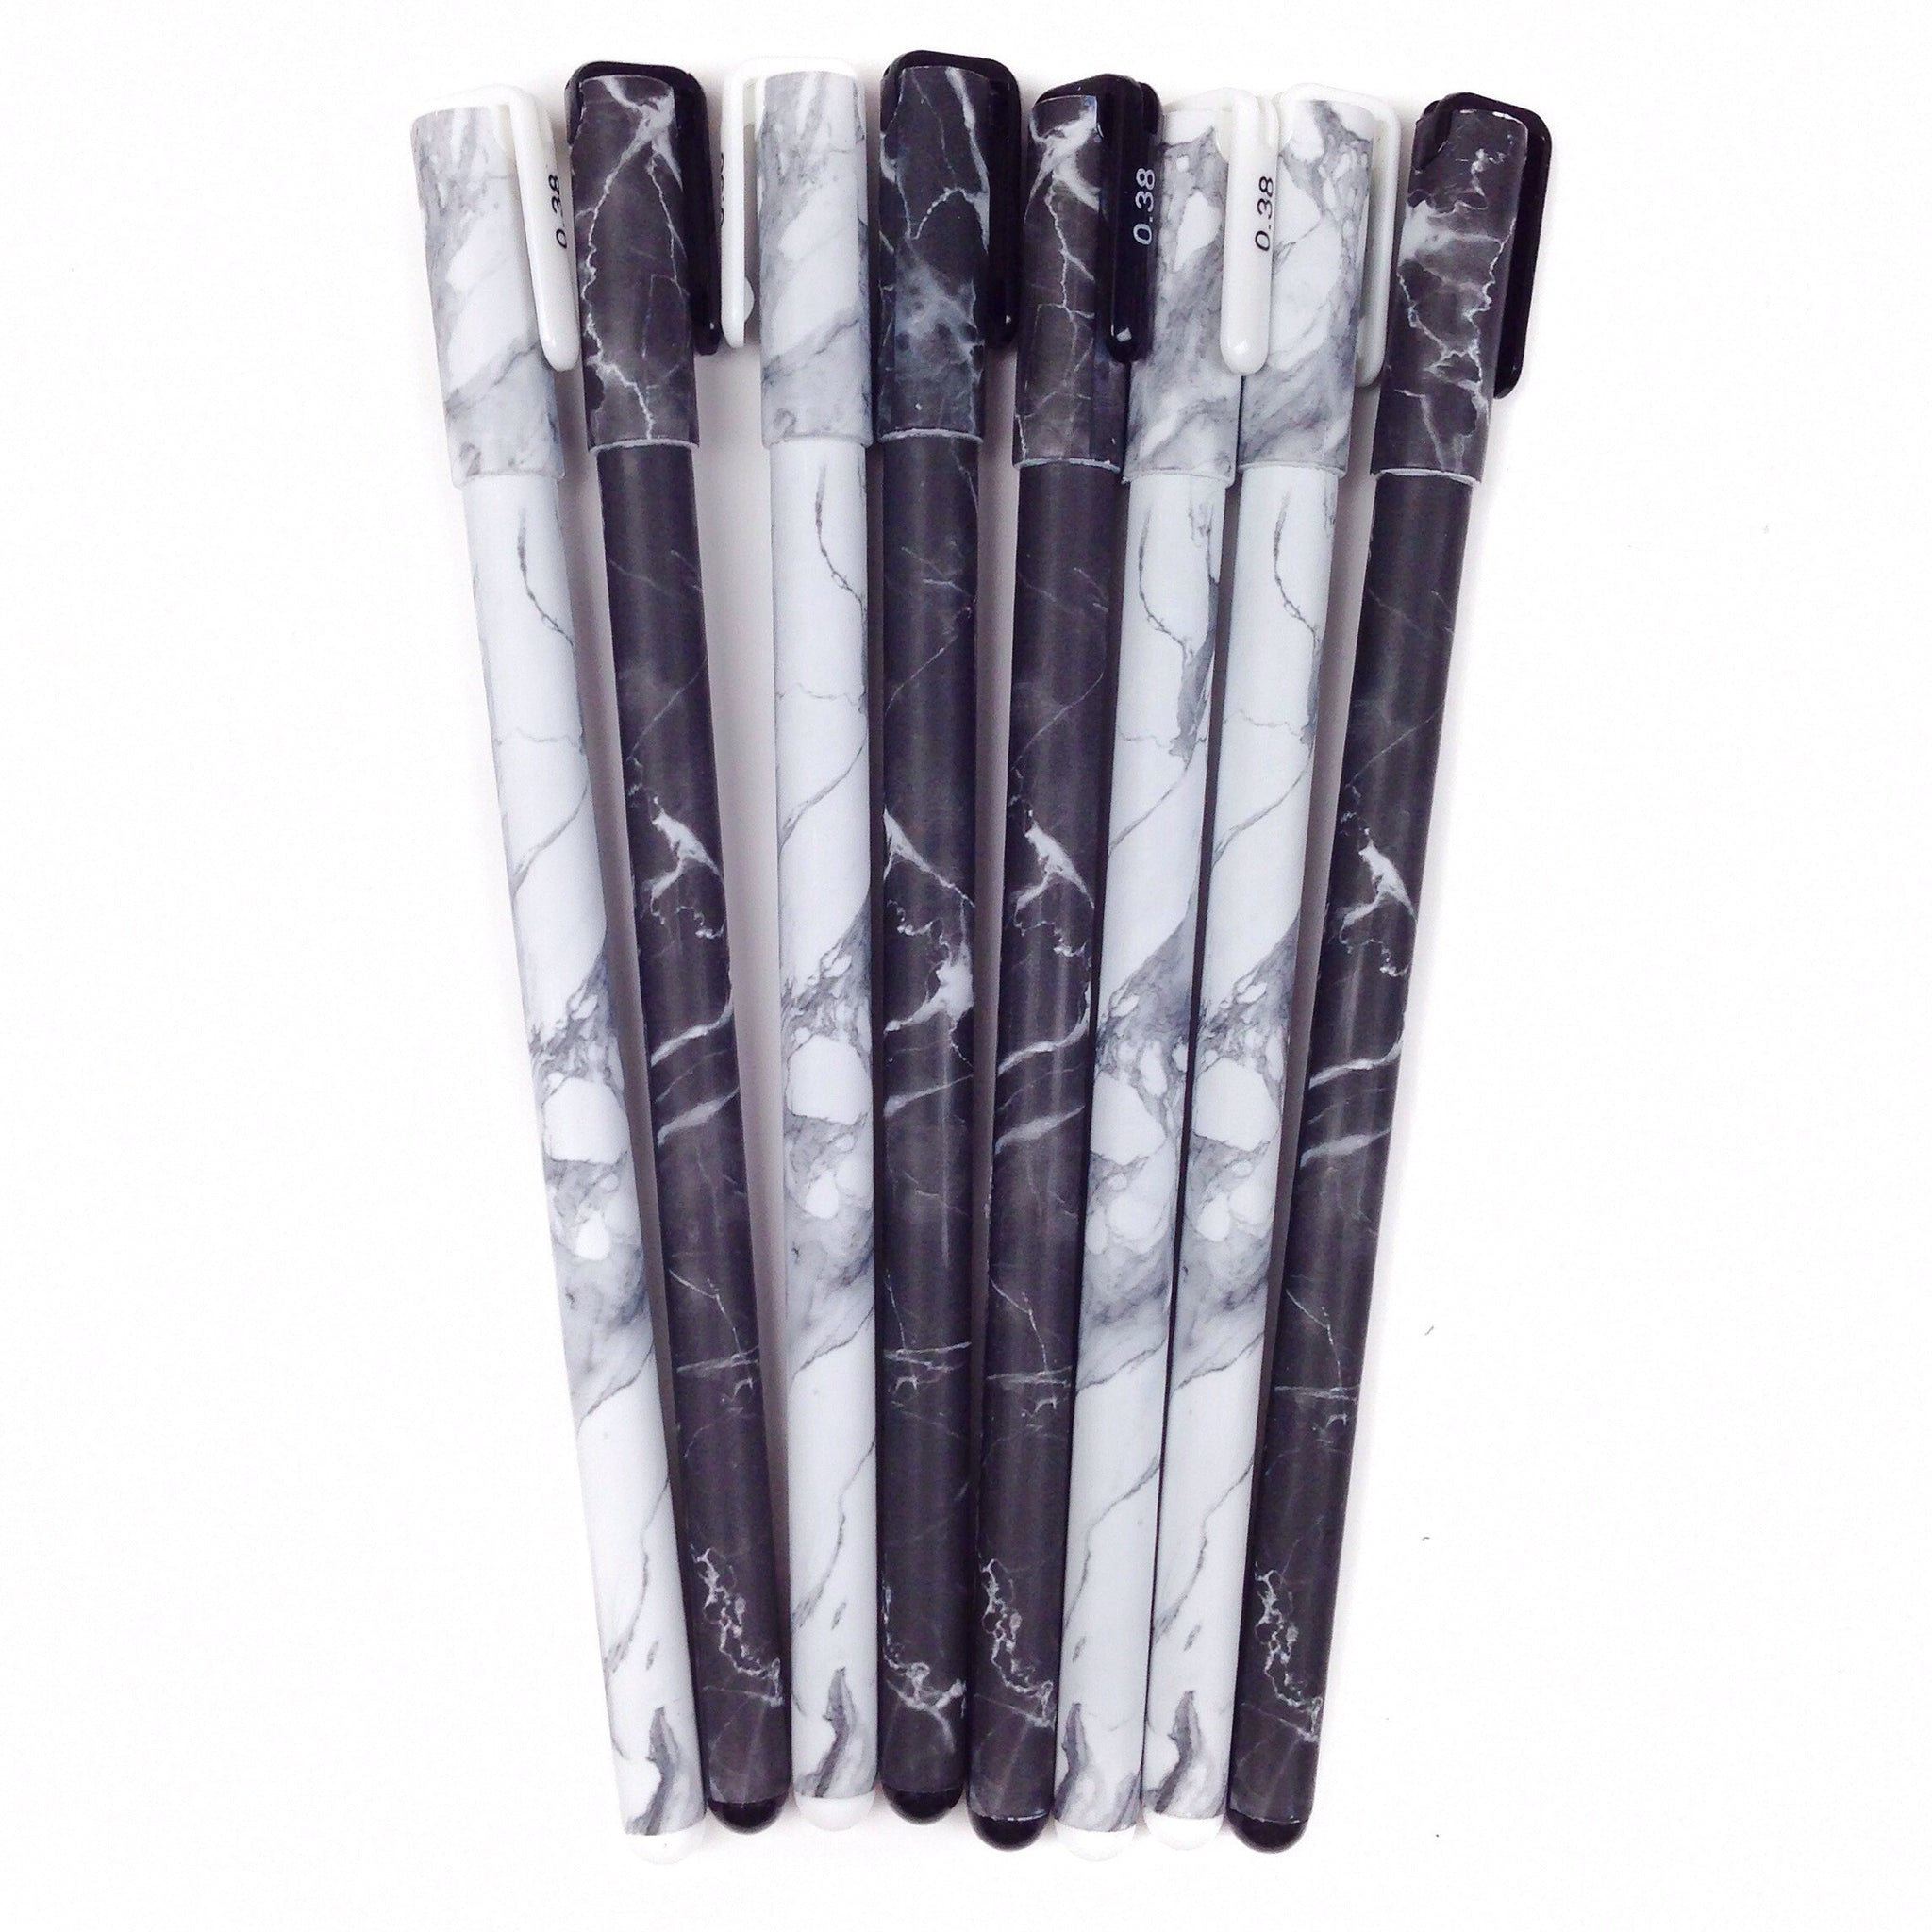 Marble Gel Ink Pen